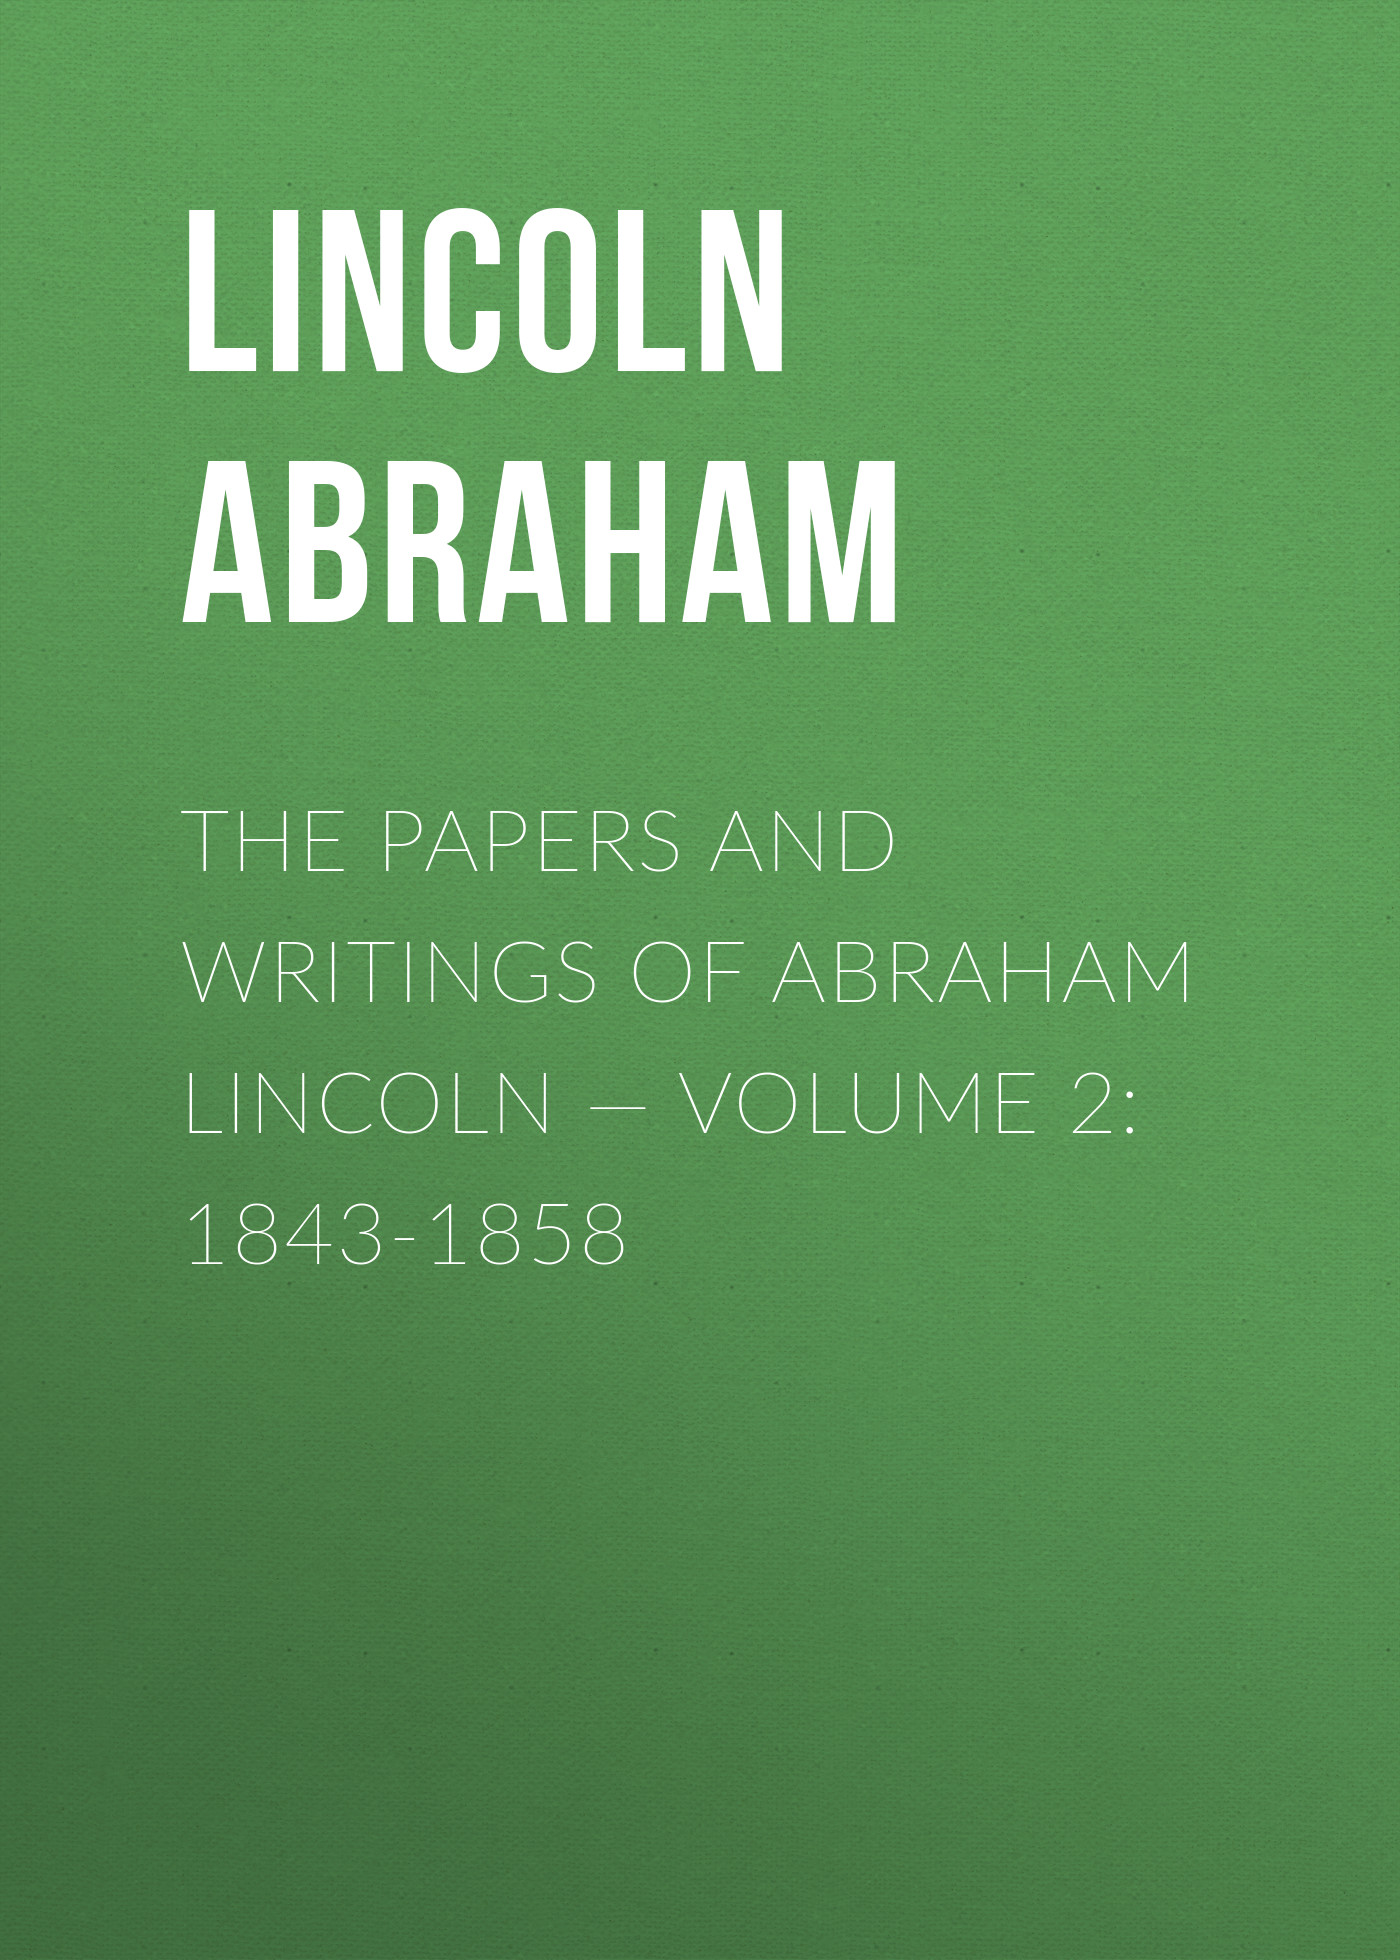 Lincoln Abraham The Papers And Writings Of Abraham Lincoln — Volume 2: 1843-1858